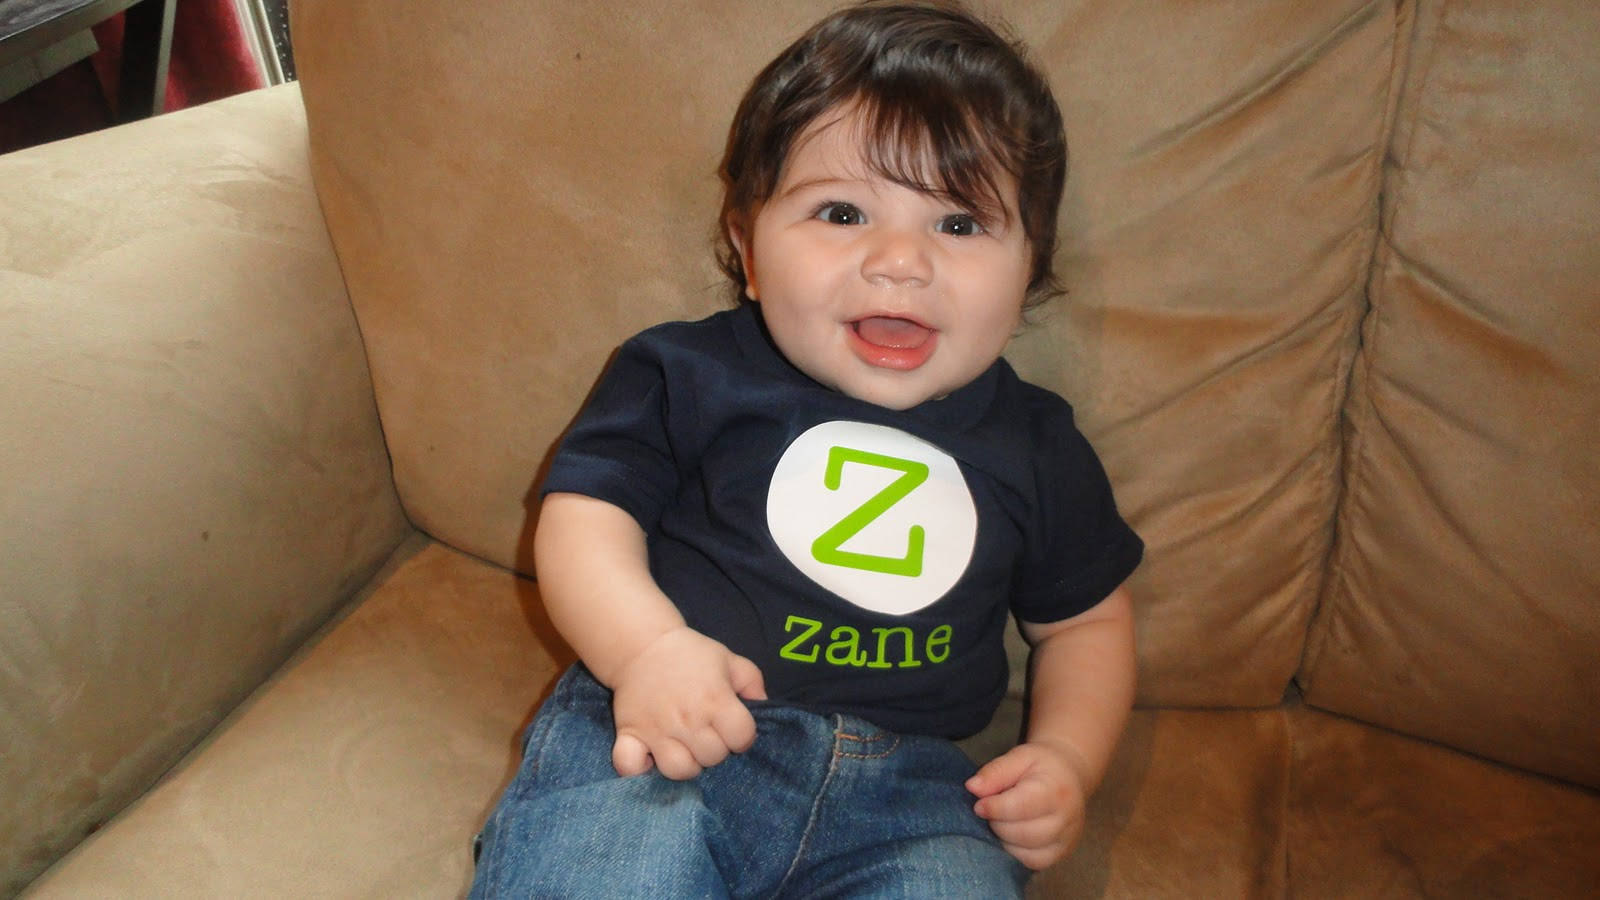 We Personally Did The Matching Z And H Shirts For My Kids As Well A 3 Year Old Birthday Shirt With Hayley Written On It